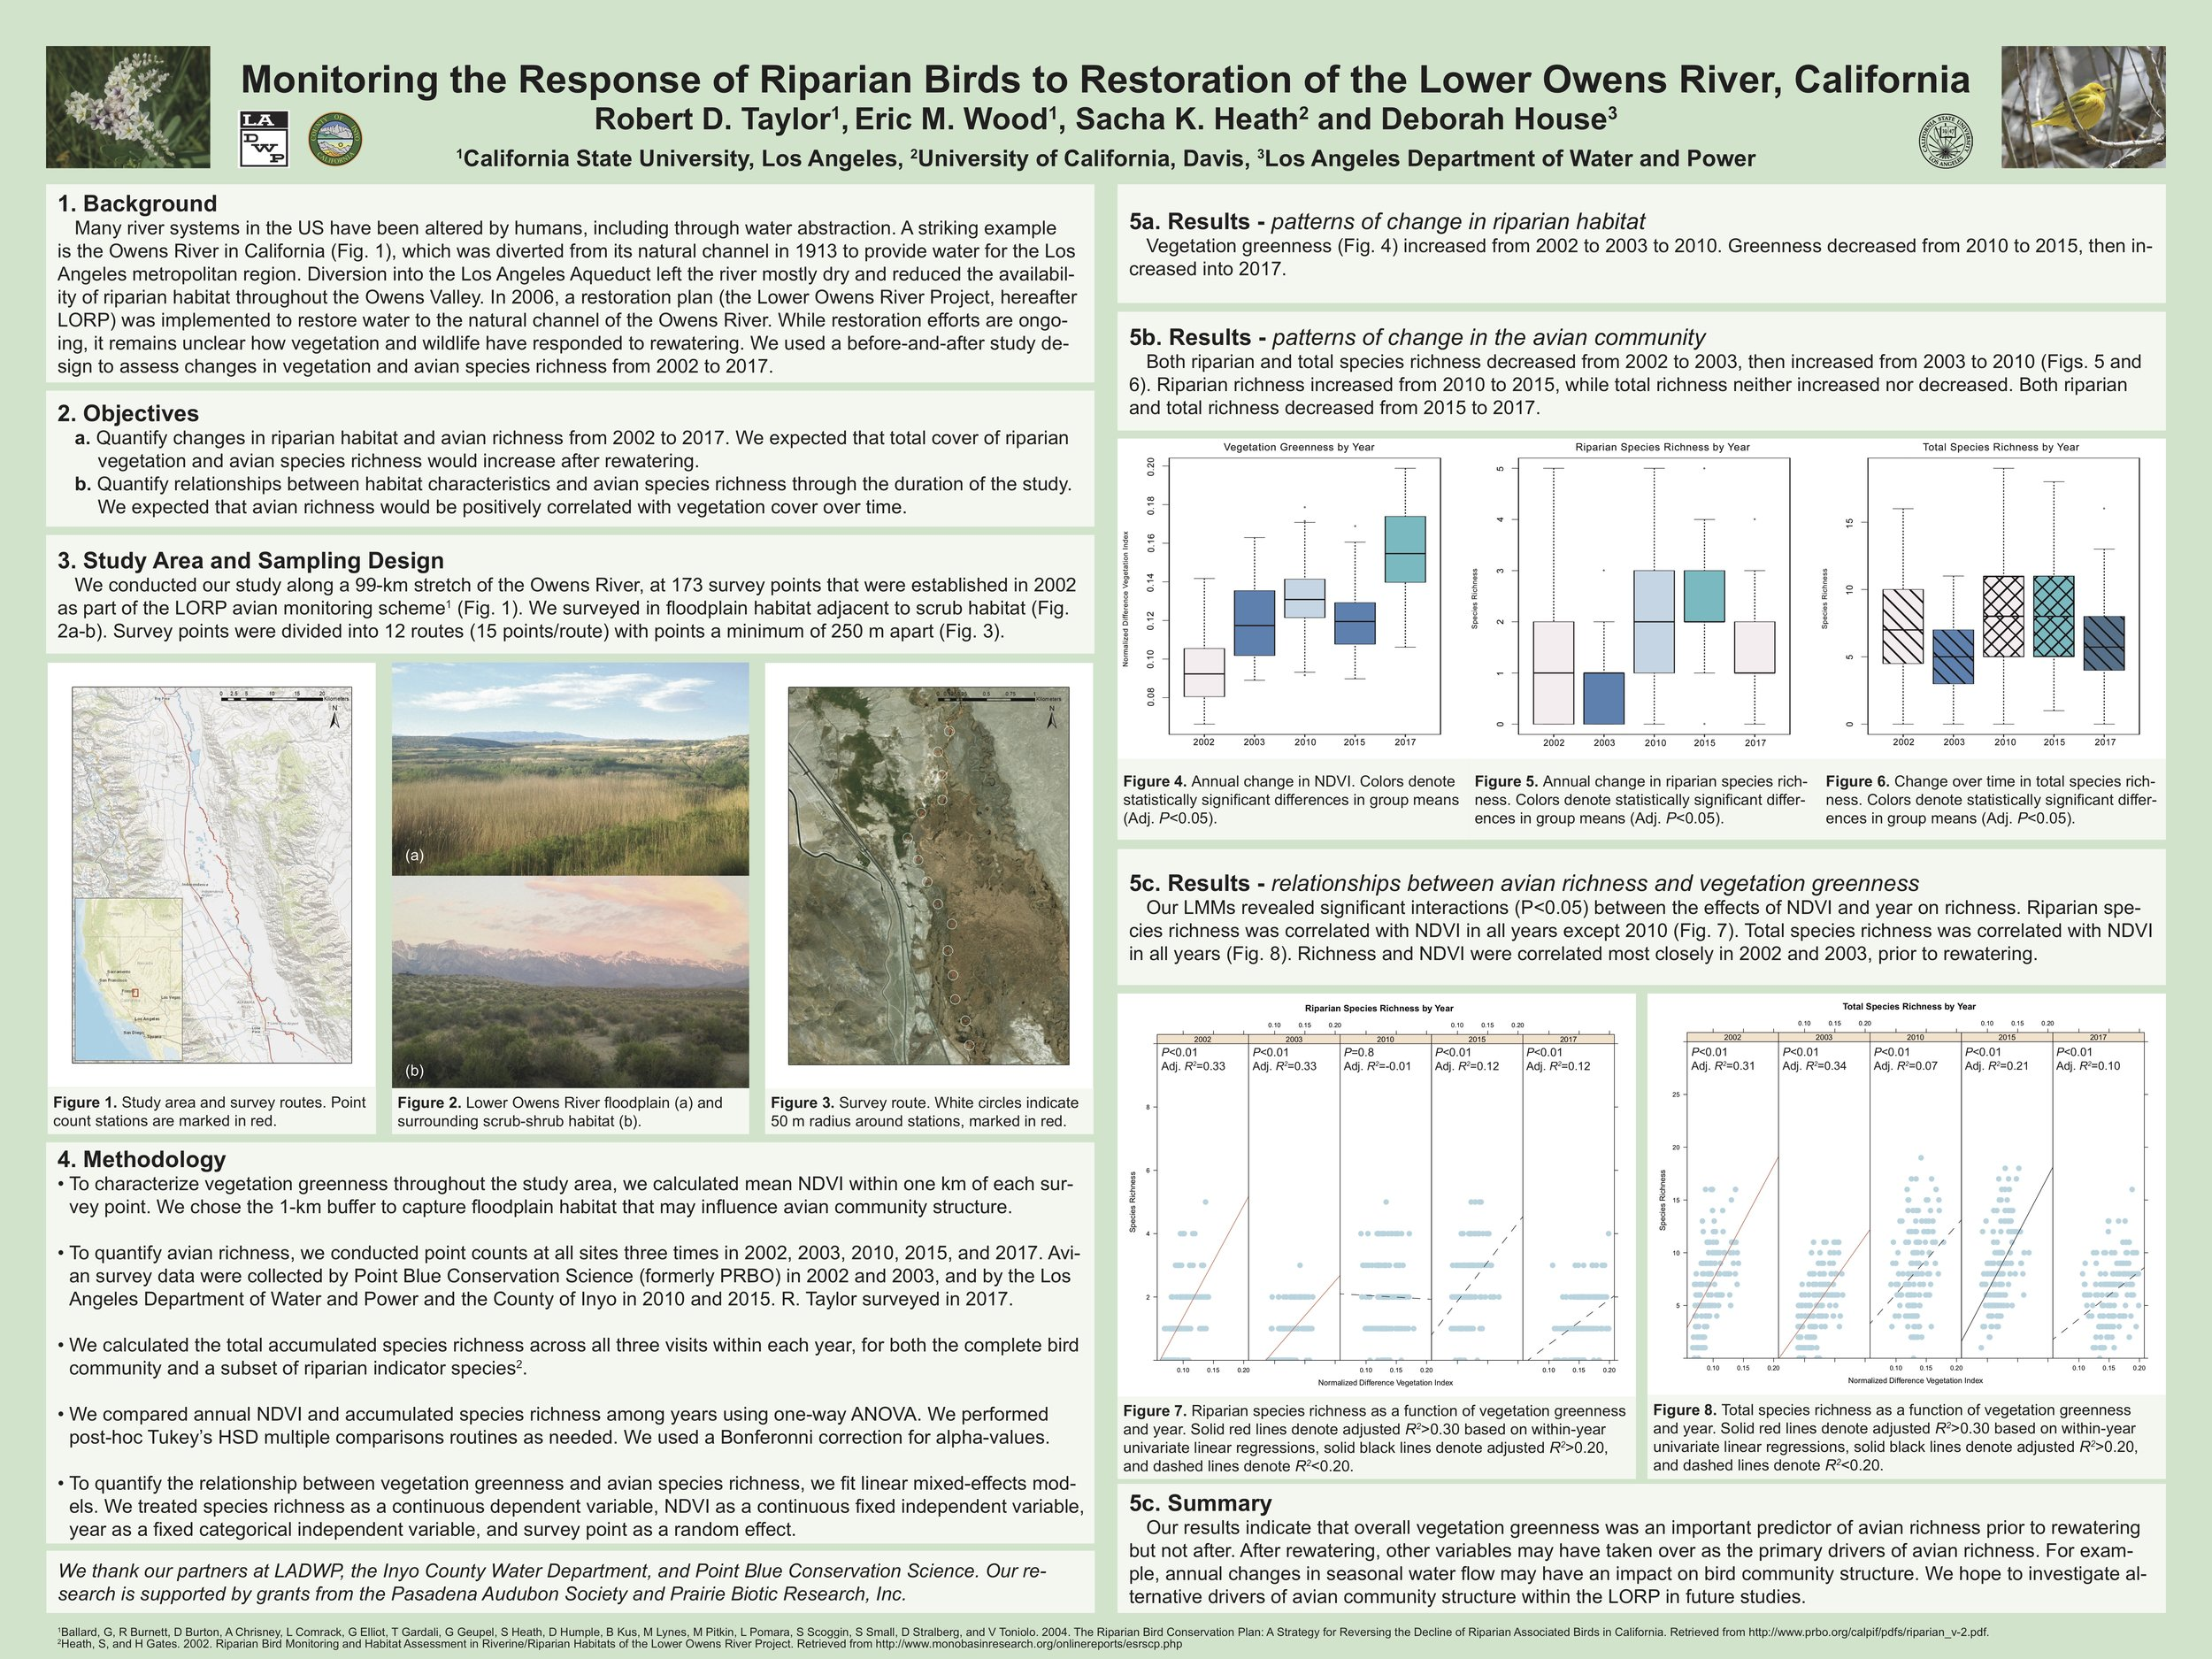 Bob's field efforts were a resurvey of locations that were originally established and surveyed in the early 2000s (pre-watering). There were a handful of post-watering surveys, and Bob added two more years of work to those efforts This poster highlights the change over time by the avian community following rewatering efforts. Avian communities initially rebounded following rewatering, but have seemingly leveled off. While adding water to the system does have a positive impact on the region's avian community, additional efforts (e.g. creating extensive floodplain habitat) are likely necessary to truly bring the system back.